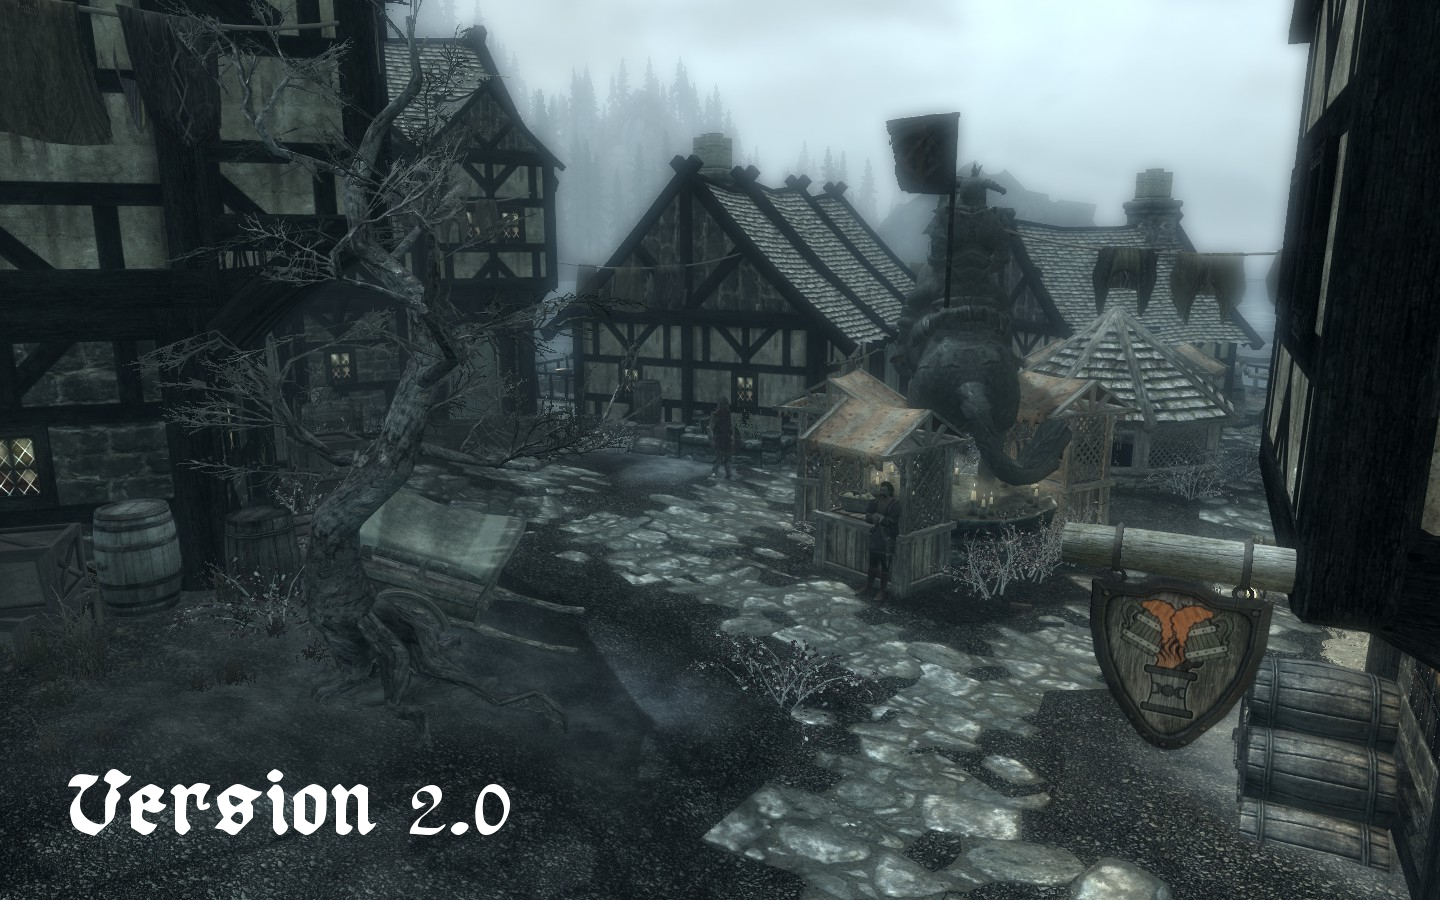 Syerscote A New Settlement With Player Home Custom Npcs